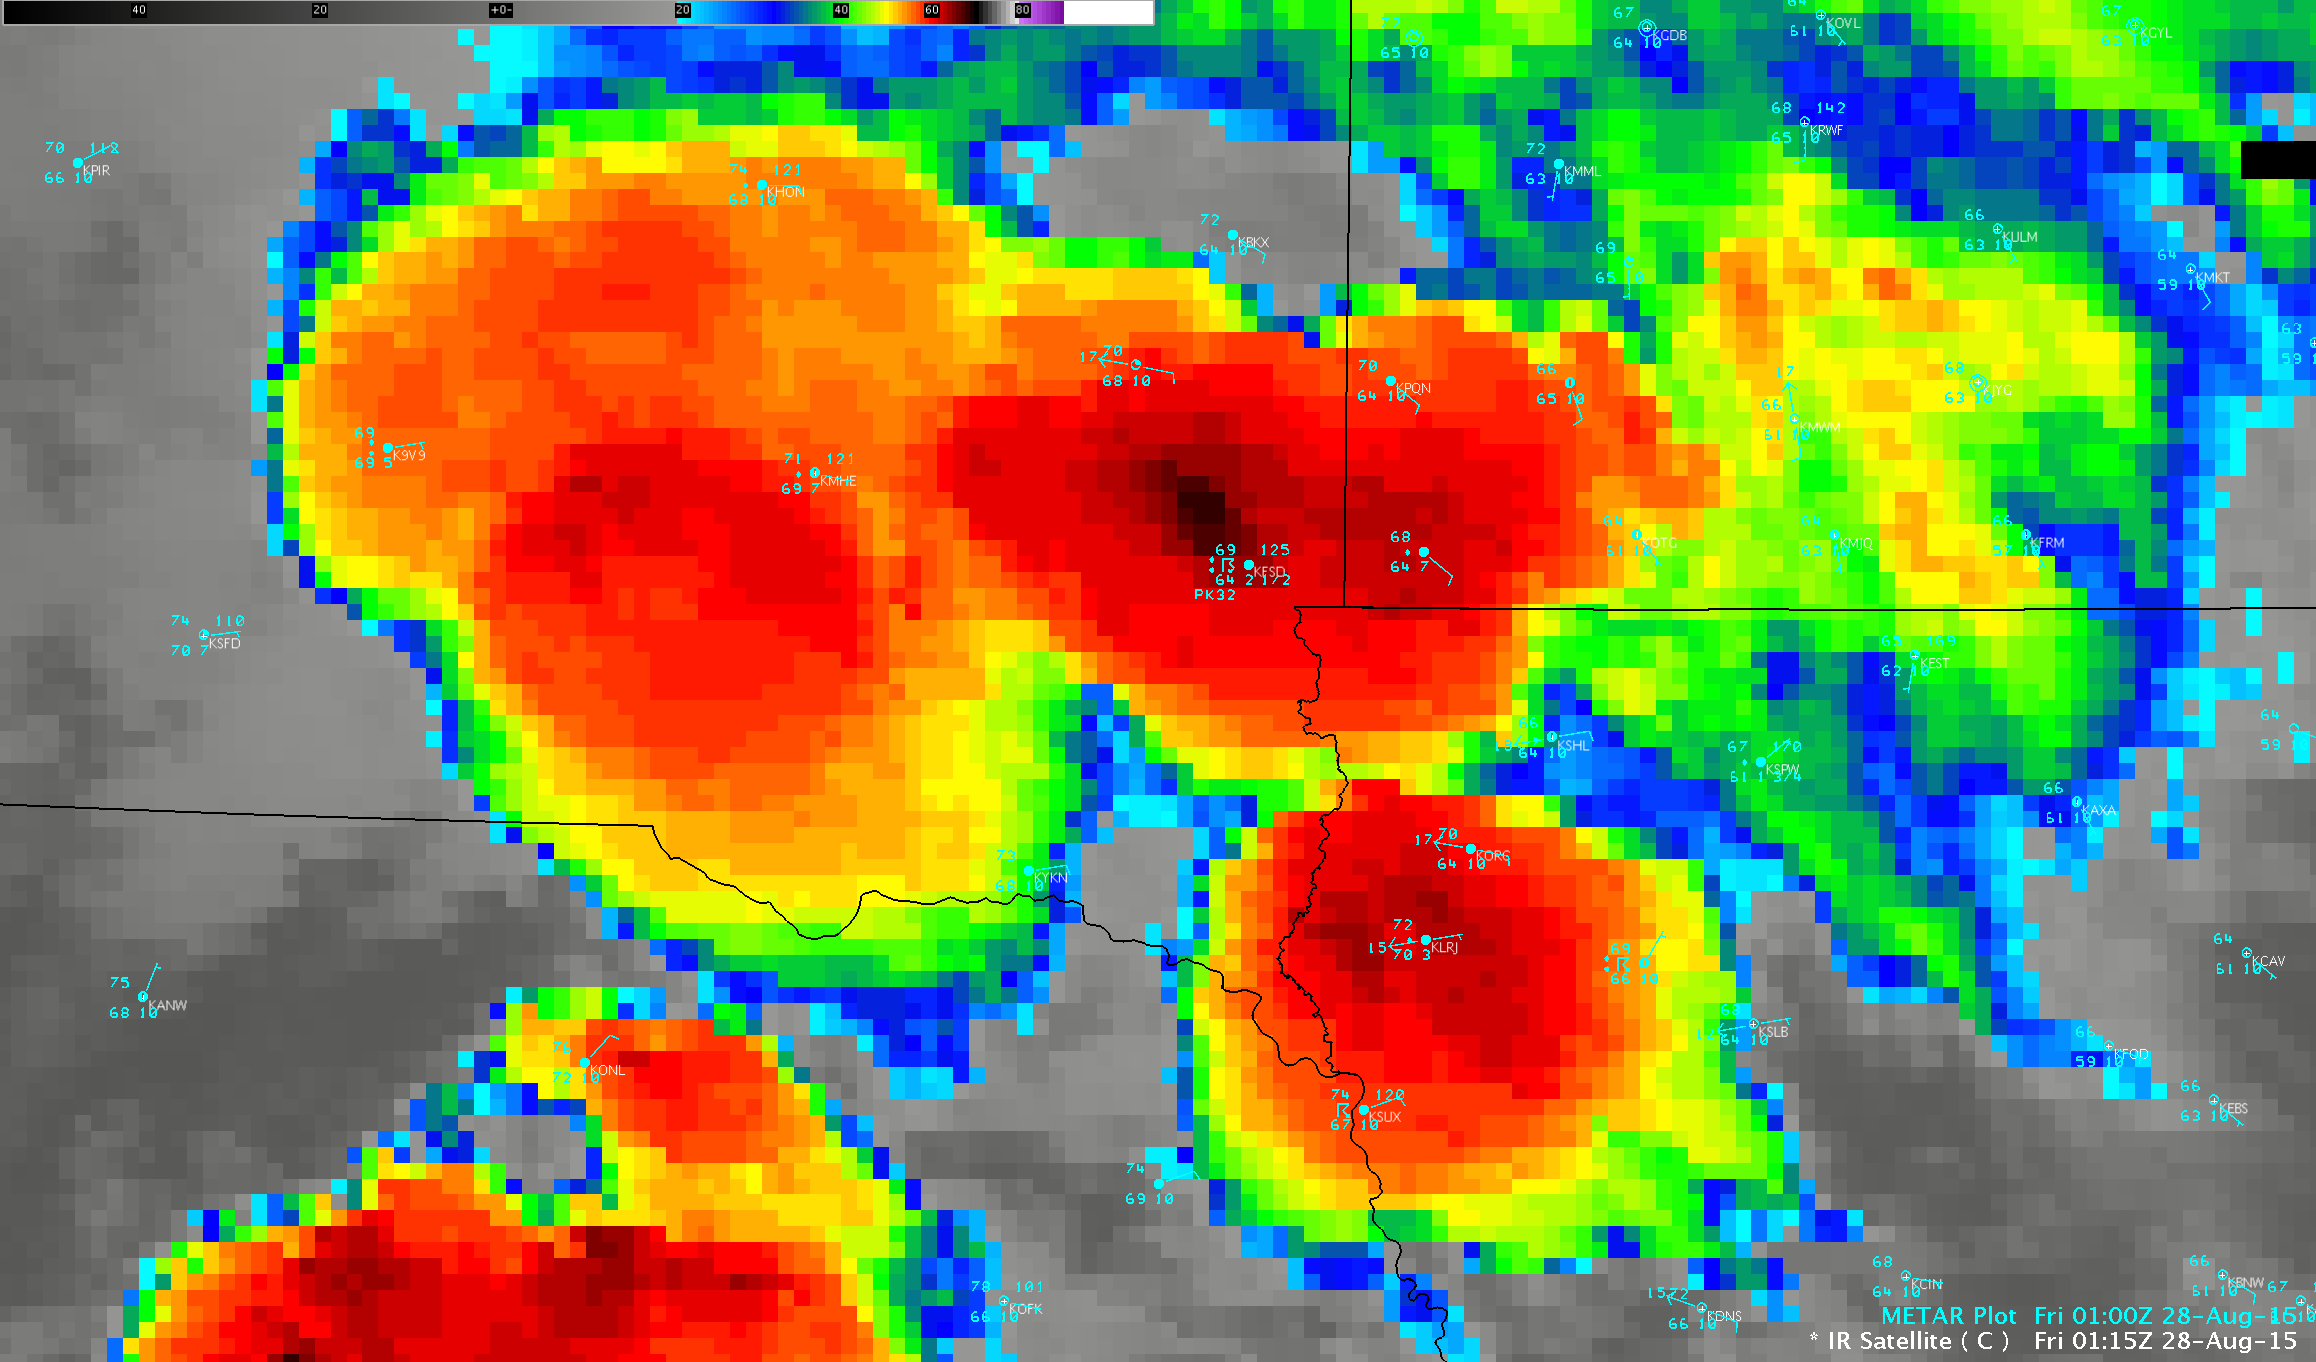 GOES-13 Infrared (10.7 um) images with METAR surface reports [click to play animation]